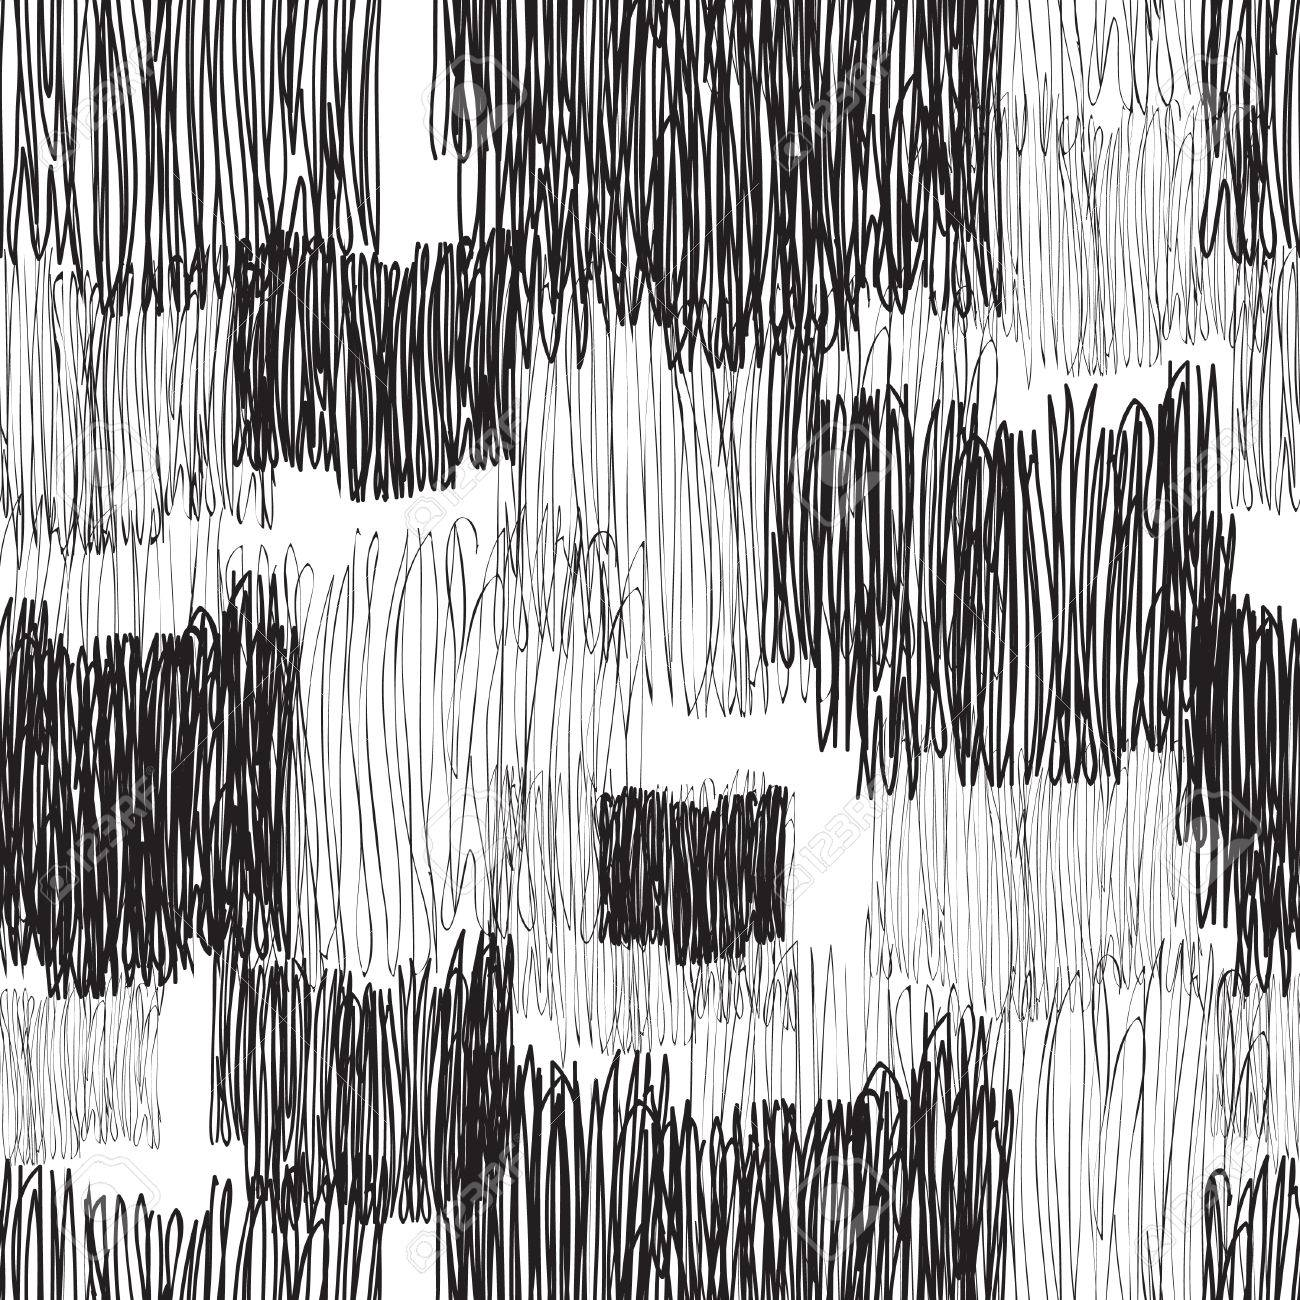 Abstract geometric seamless pattern black and white pencil drawing line texture stylish abstract ornamental stripped